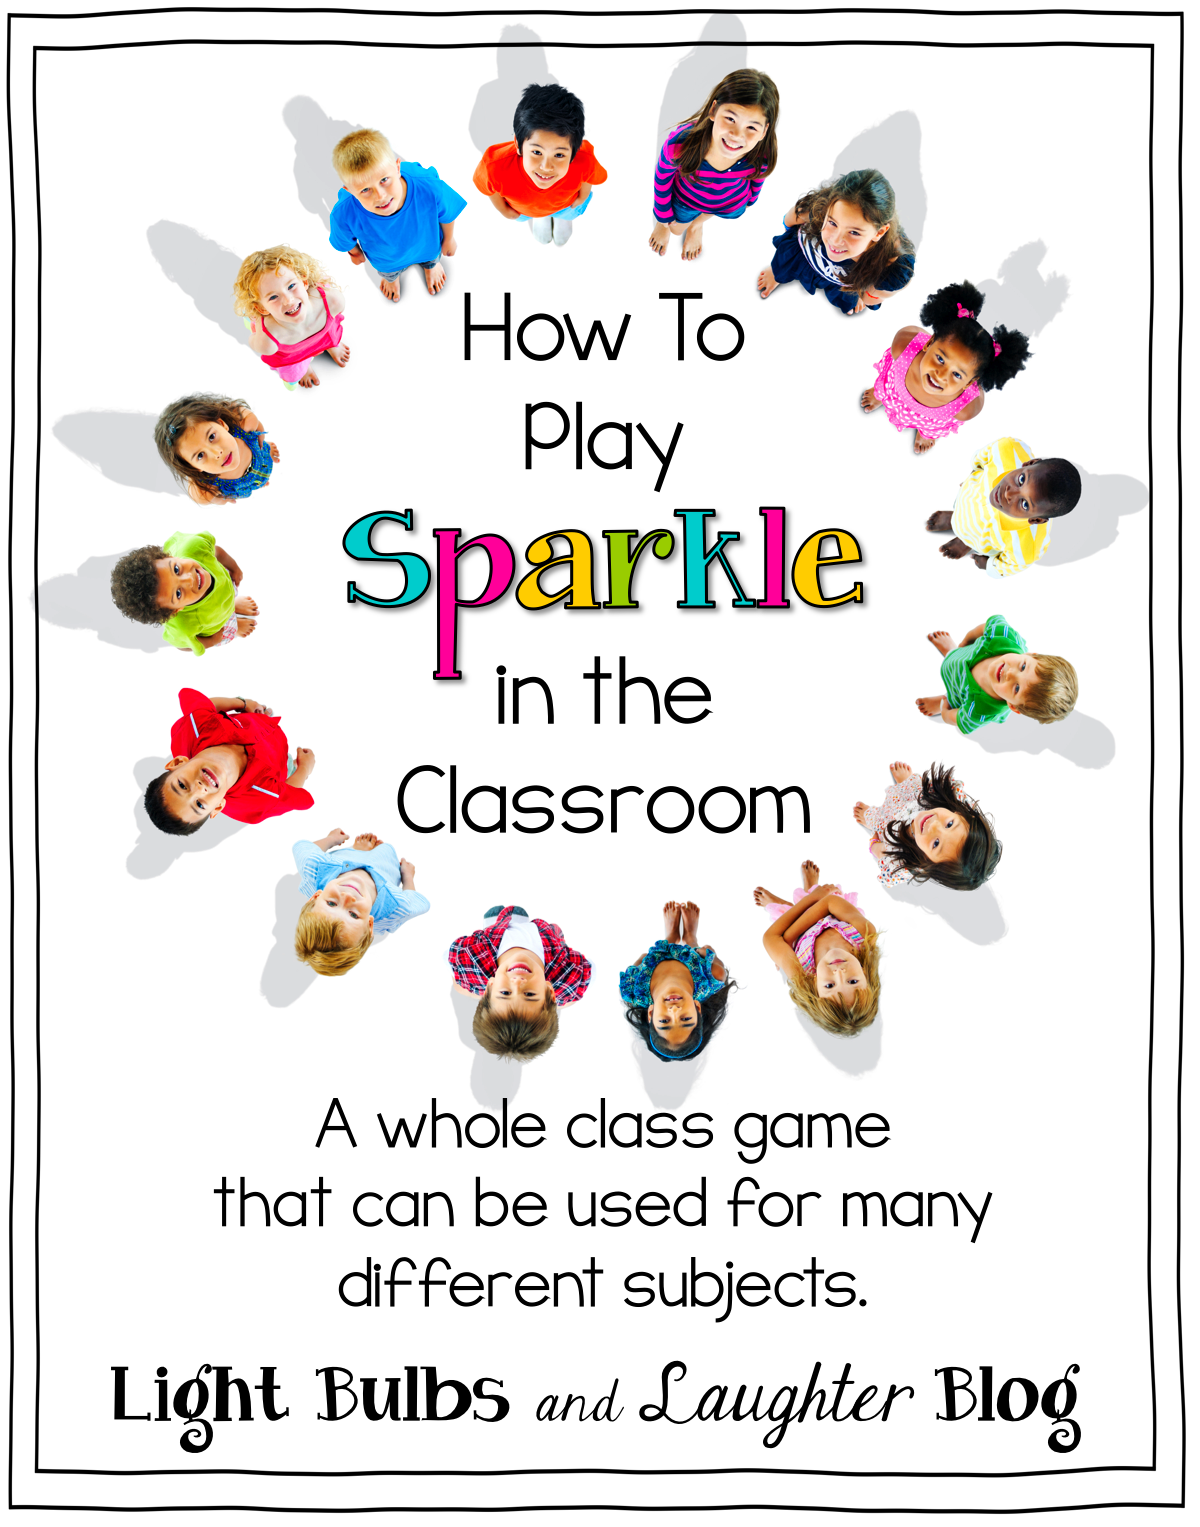 How To Play Sparkle In The Classroom